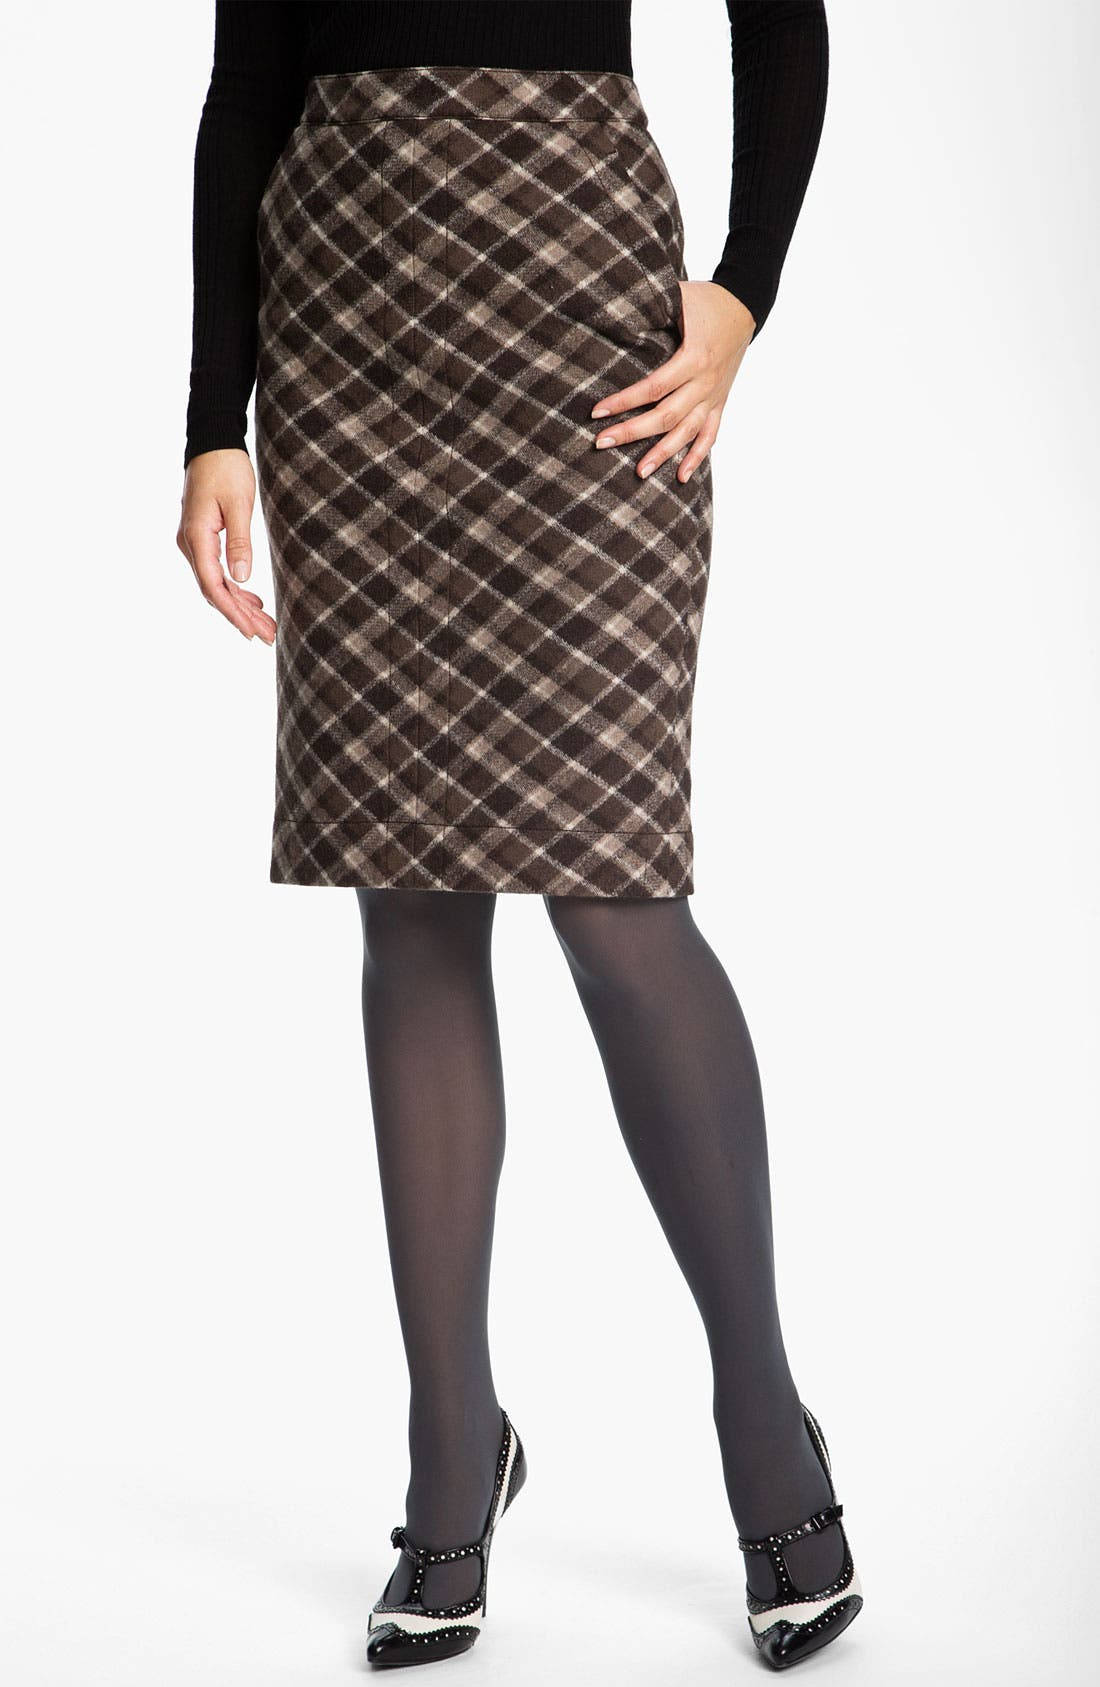 Main Image - Tory Burch 'Hawthorne' Pencil Skirt (Online Exclusive)